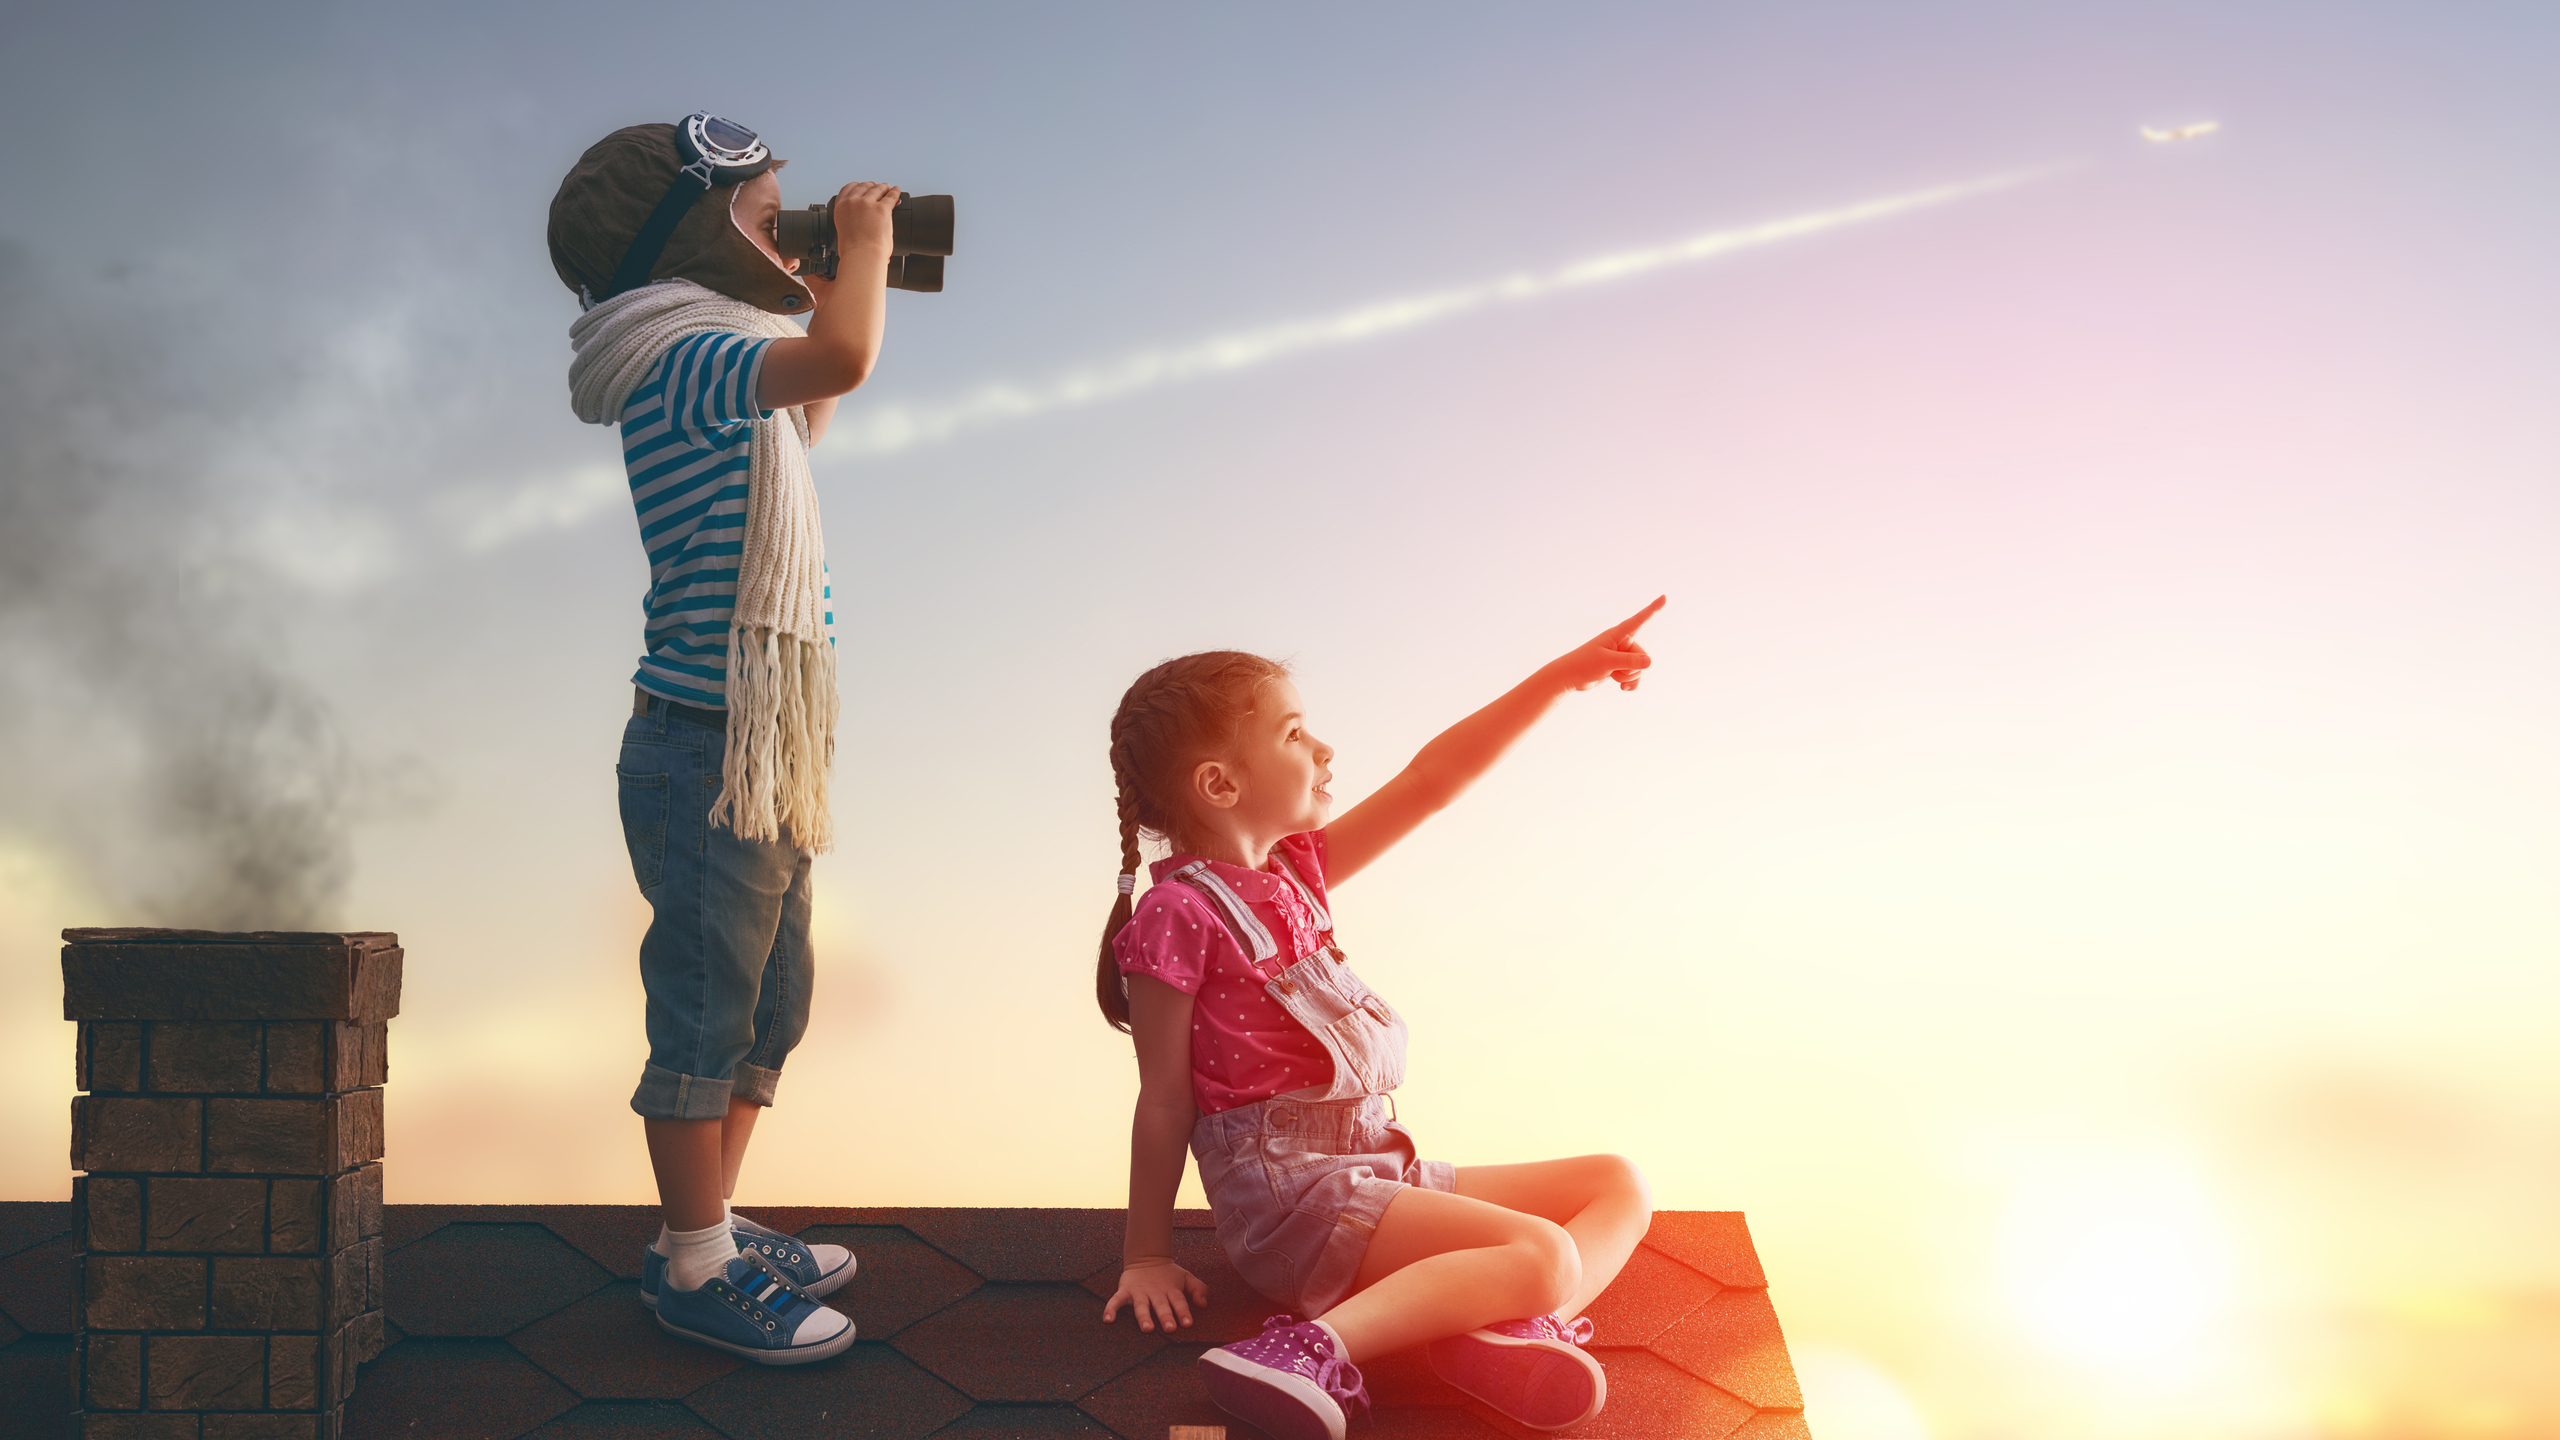 2560x1440 Little Childrens On Roof Watching Sky 1440p